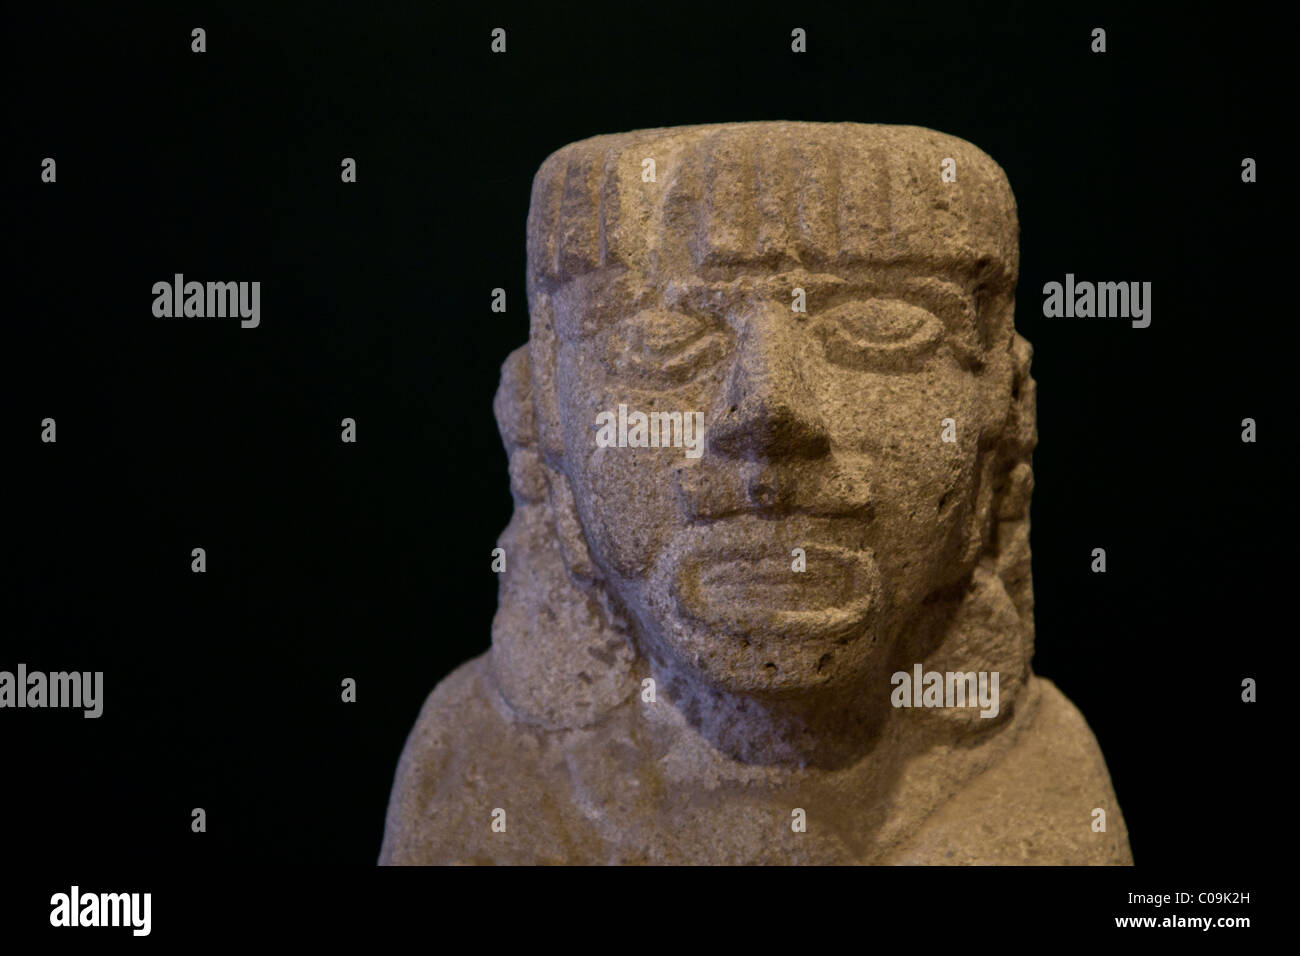 Stone carving of a toltec indian found in the ancient